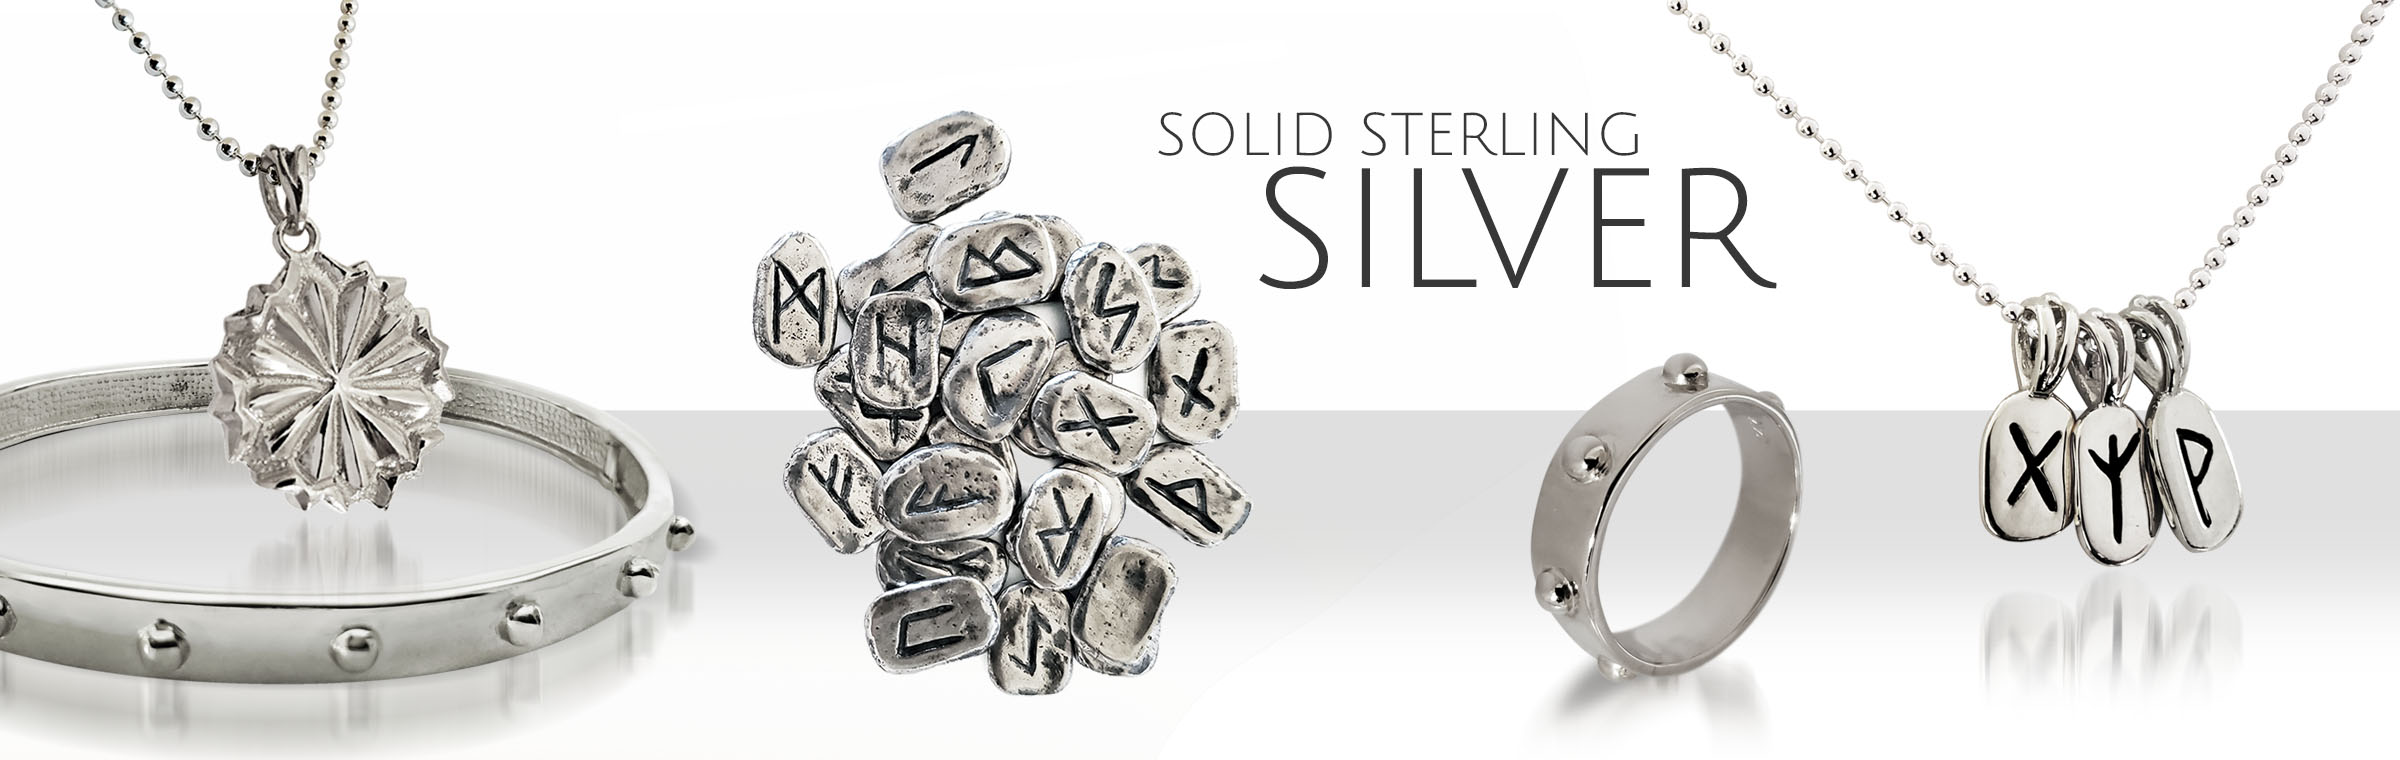 Solid Sterling Silver Jewelry by Iva Winton